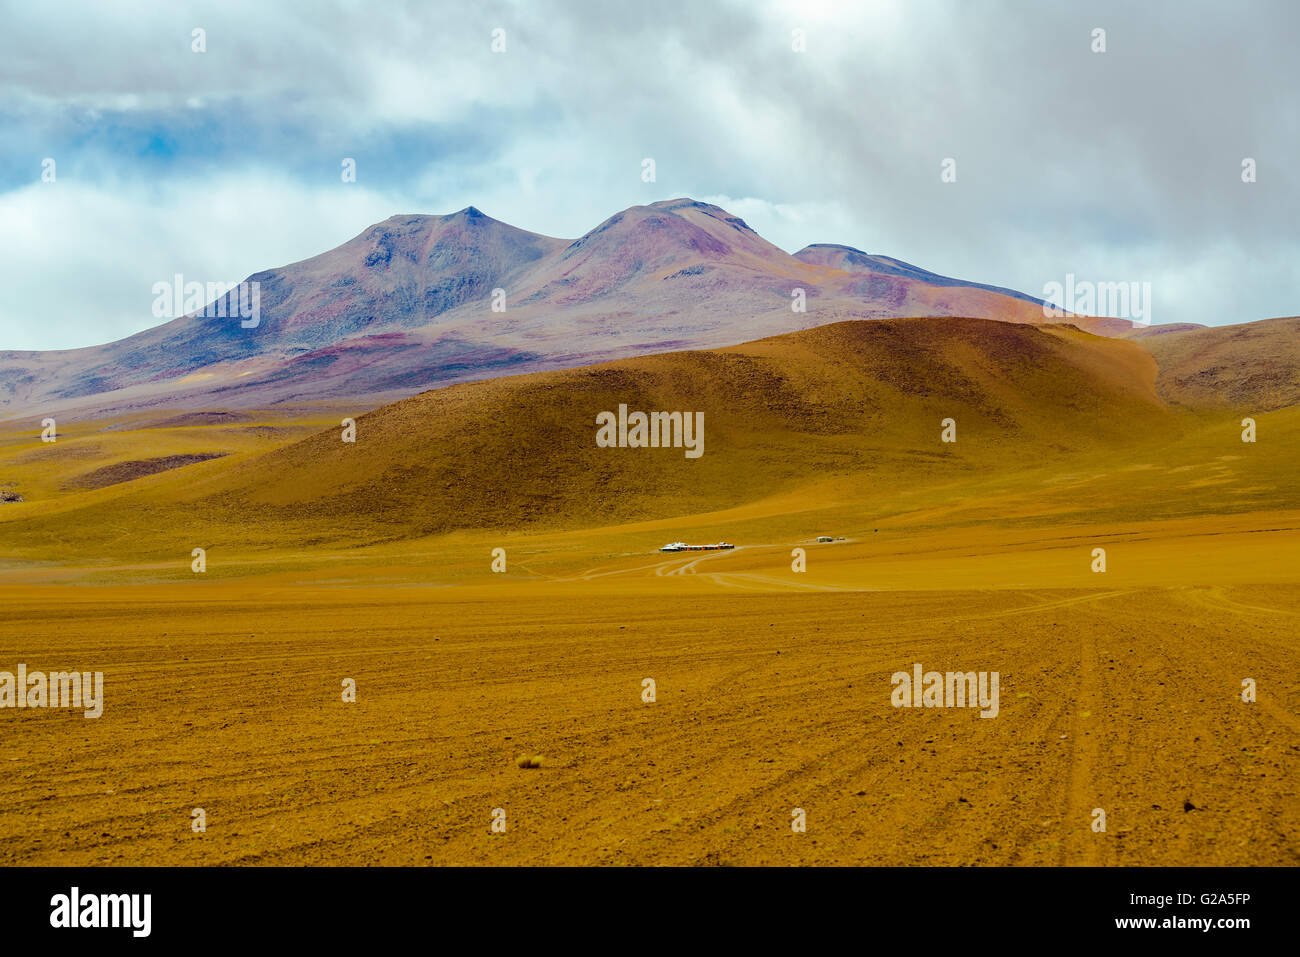 View of mountain and desert in Salar de Uyuni, Bolivia - Stock Image